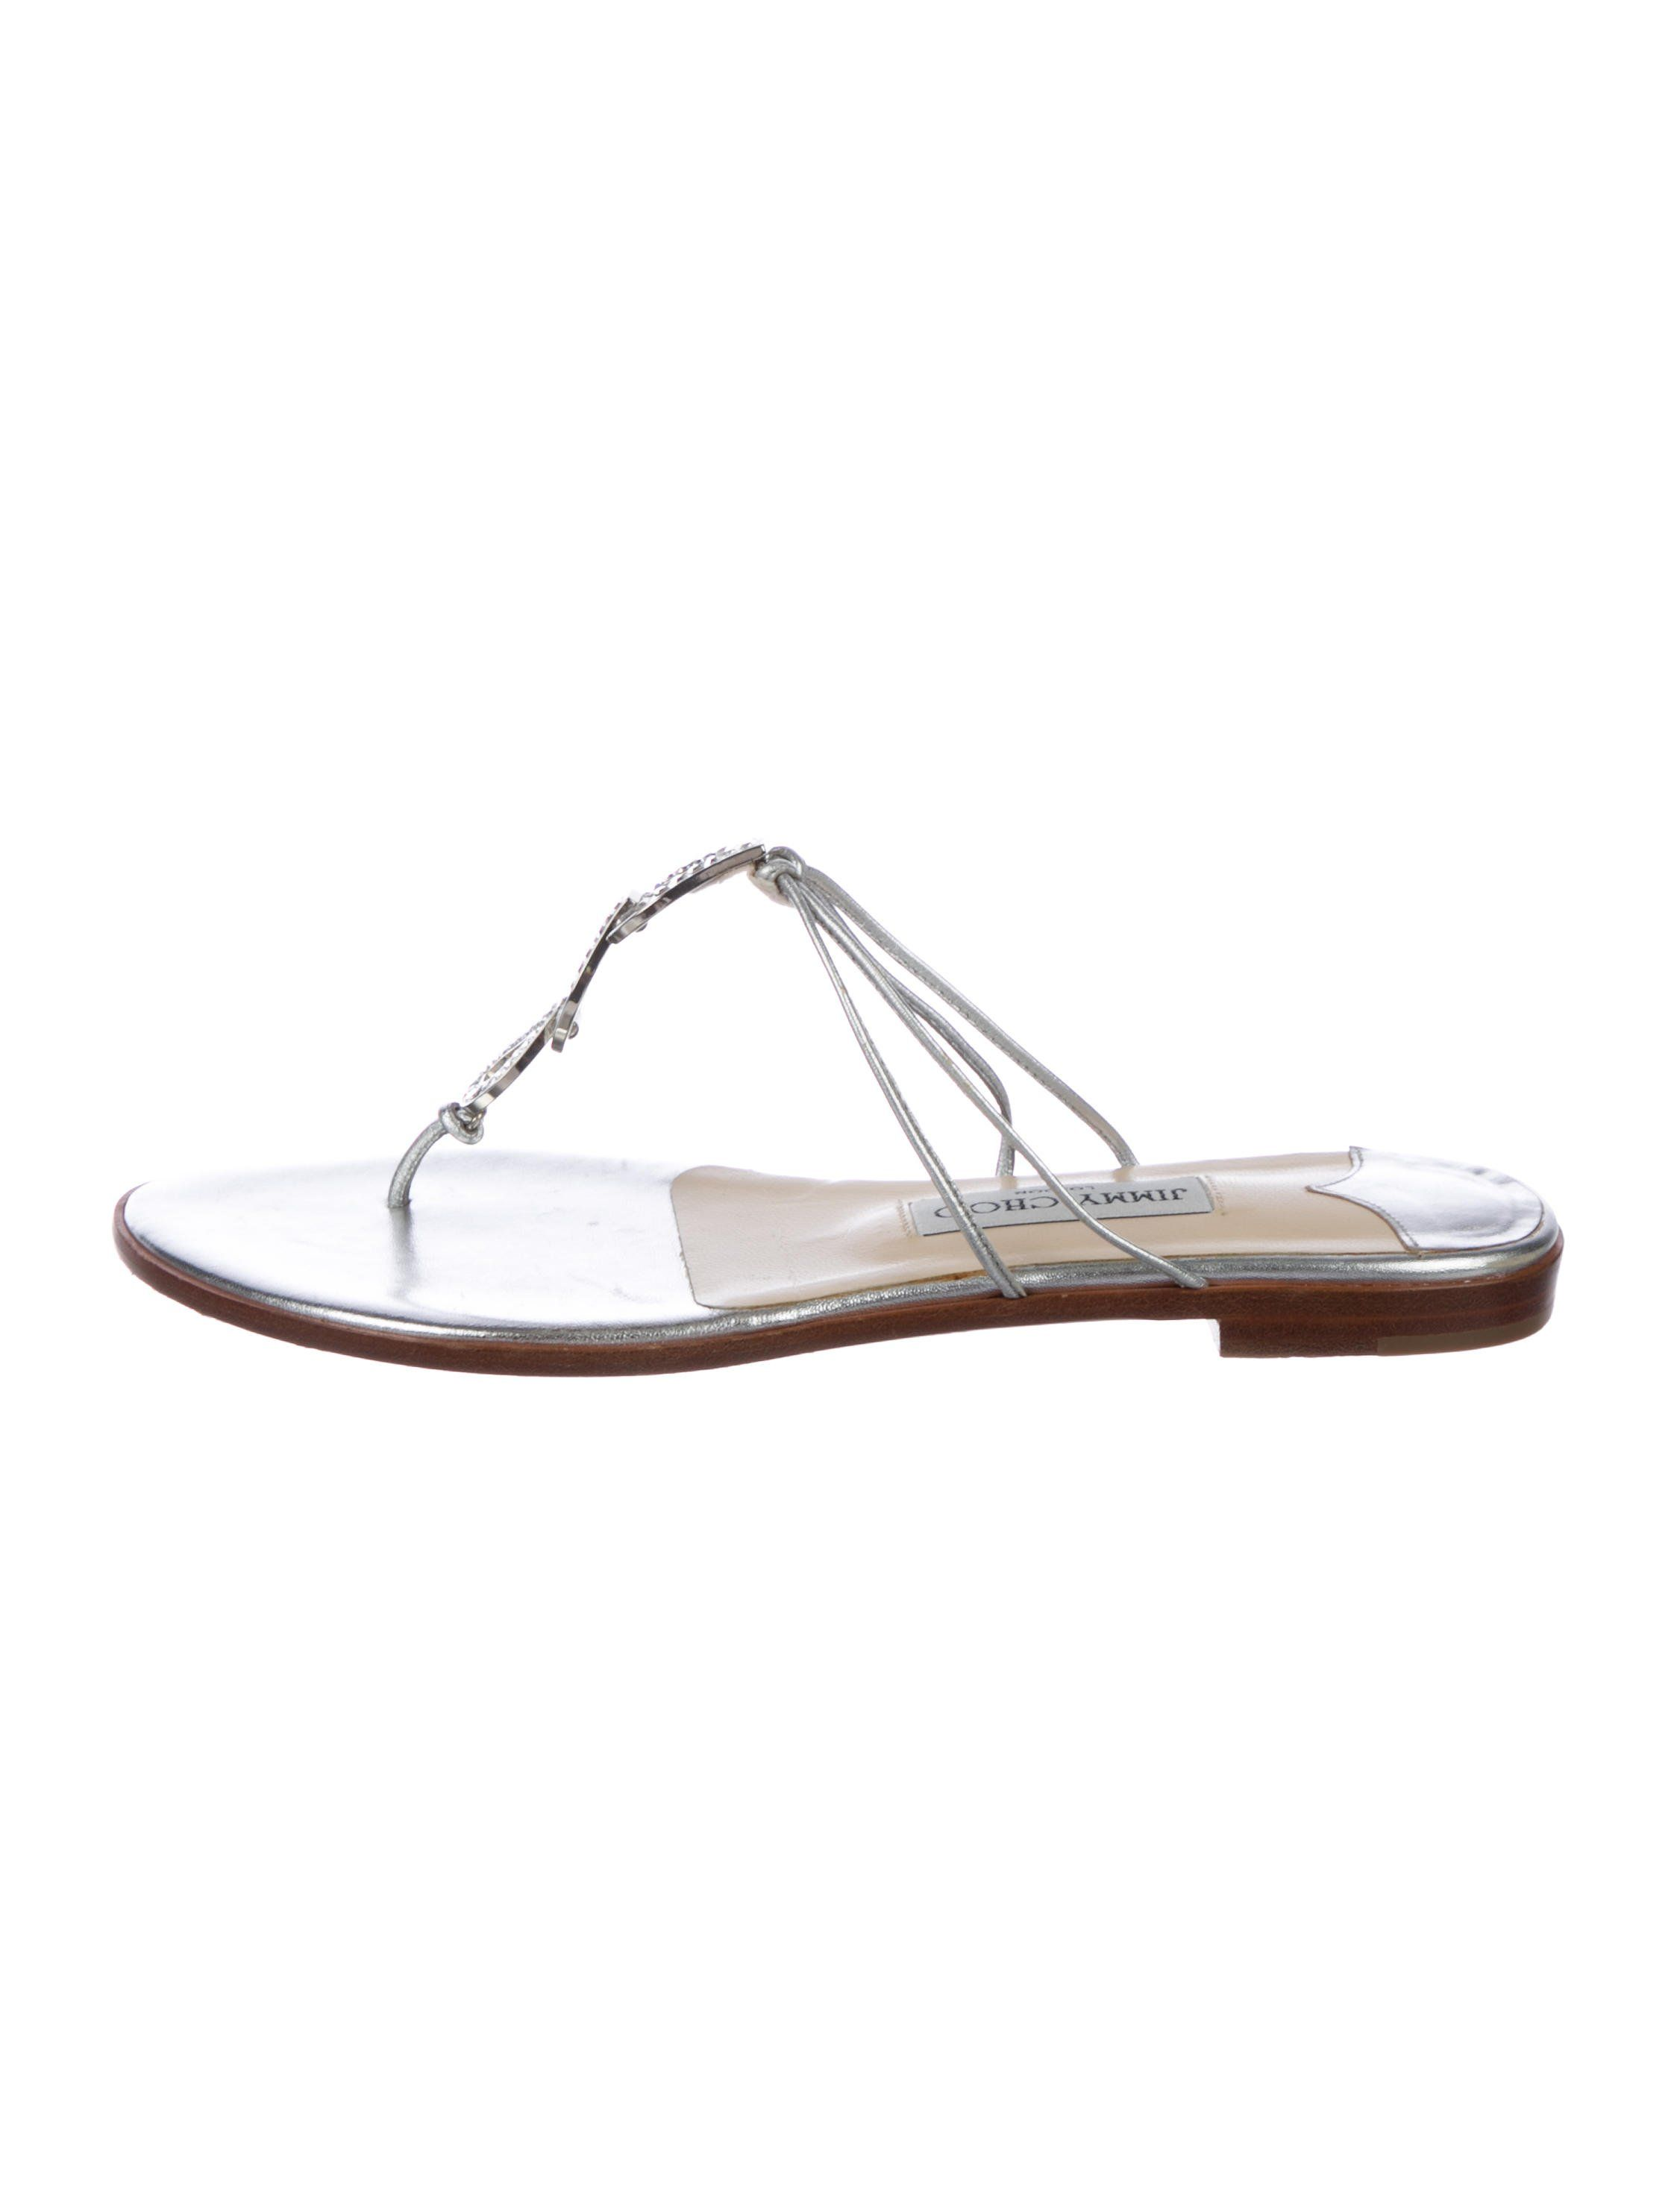 2e1a8ac67 Silver leather Jimmy Choo thong sandals with crystal embellishments at vamps  and stacked heels.